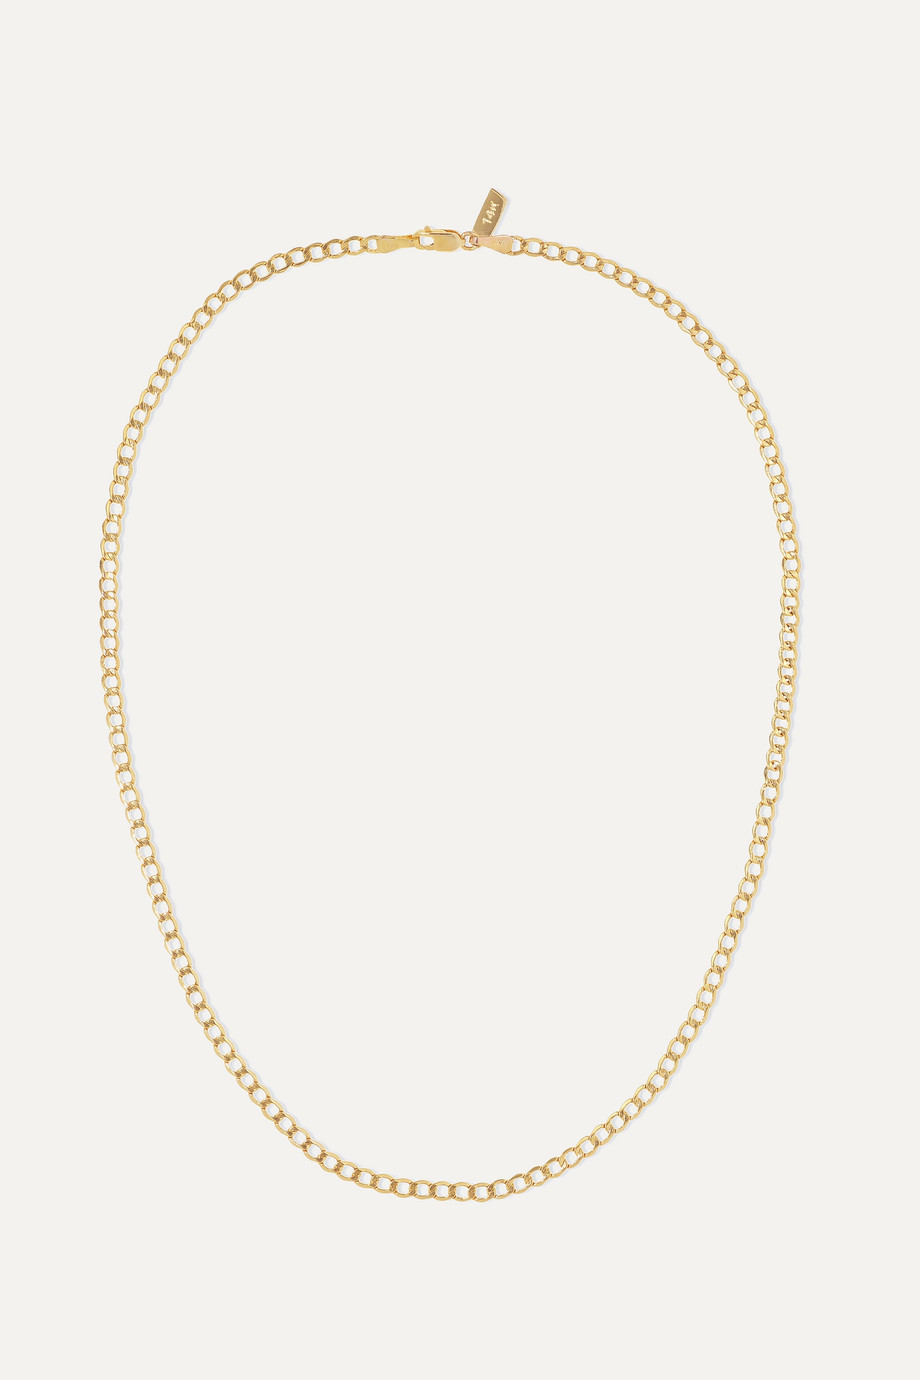 Loren Stewart Havana 14-karat gold necklace